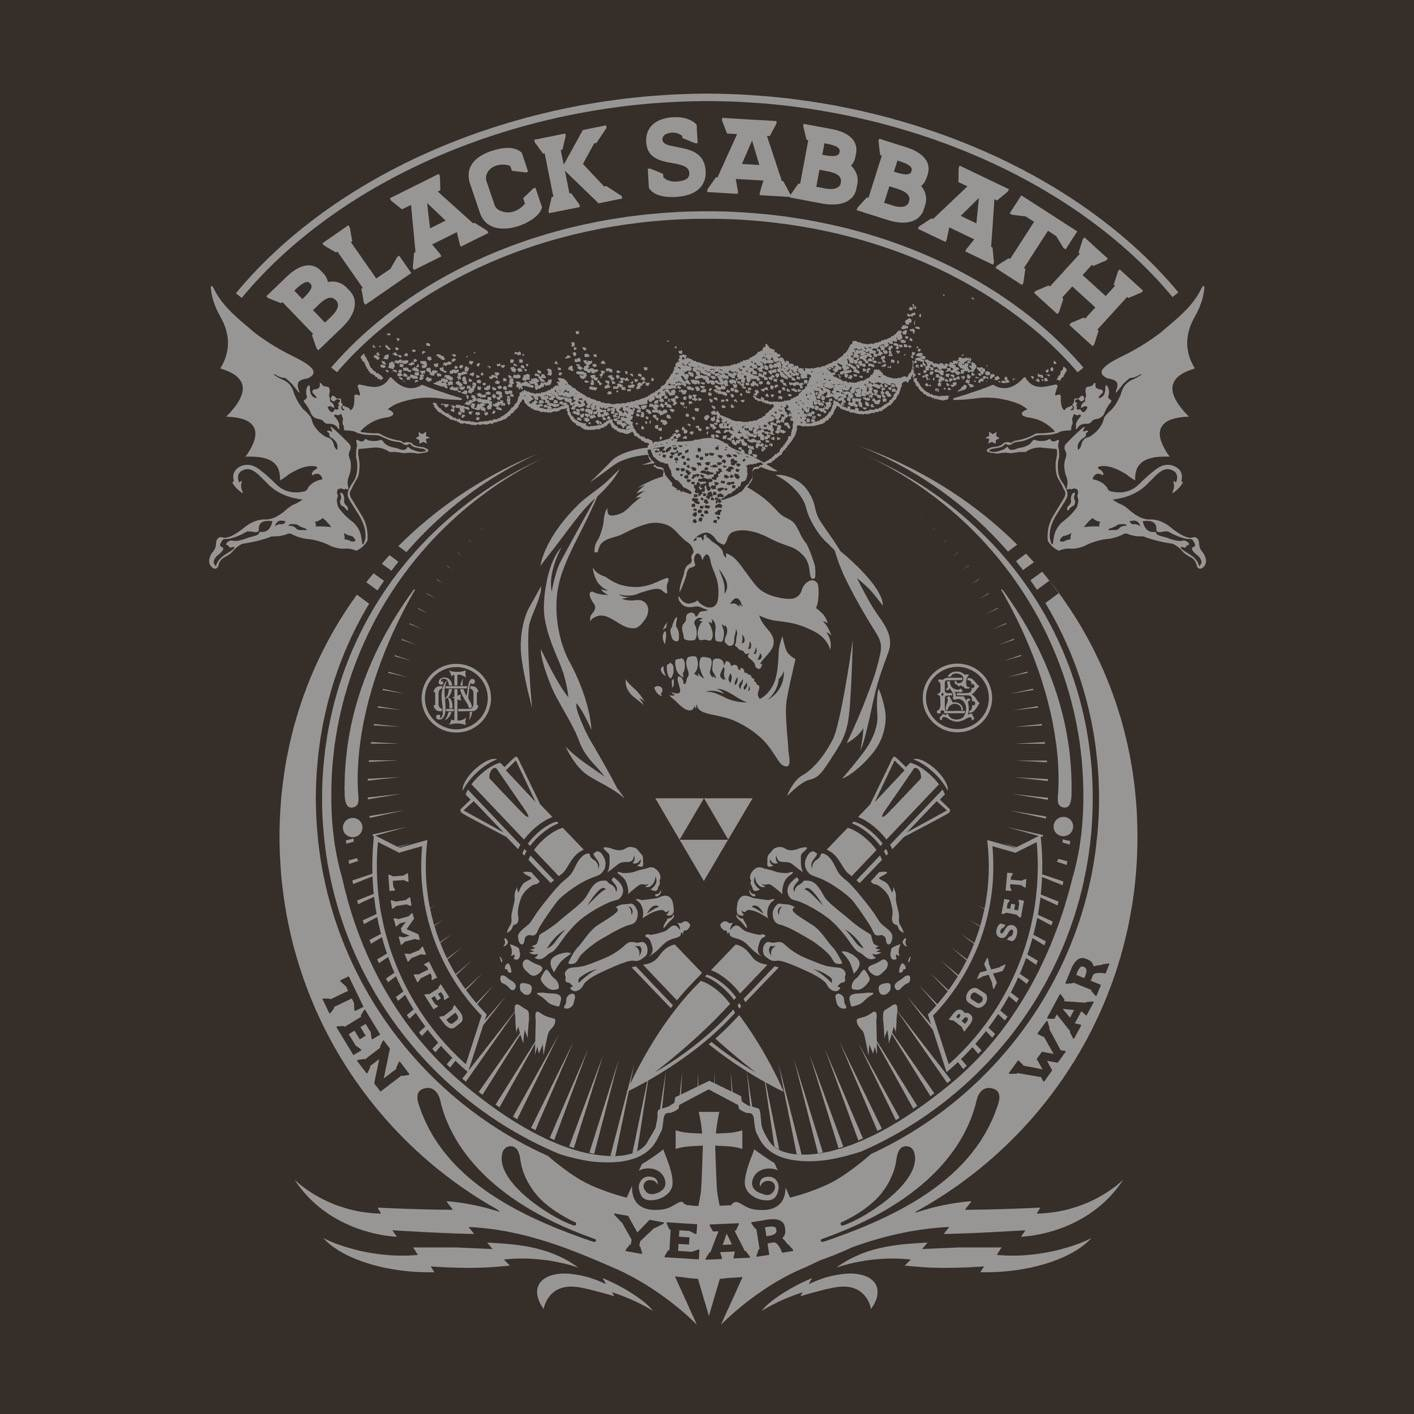 Black Sabbath - The Ten Year War {8CD Box Set} (2017) [Official Digital Download 24bit/96kHz]